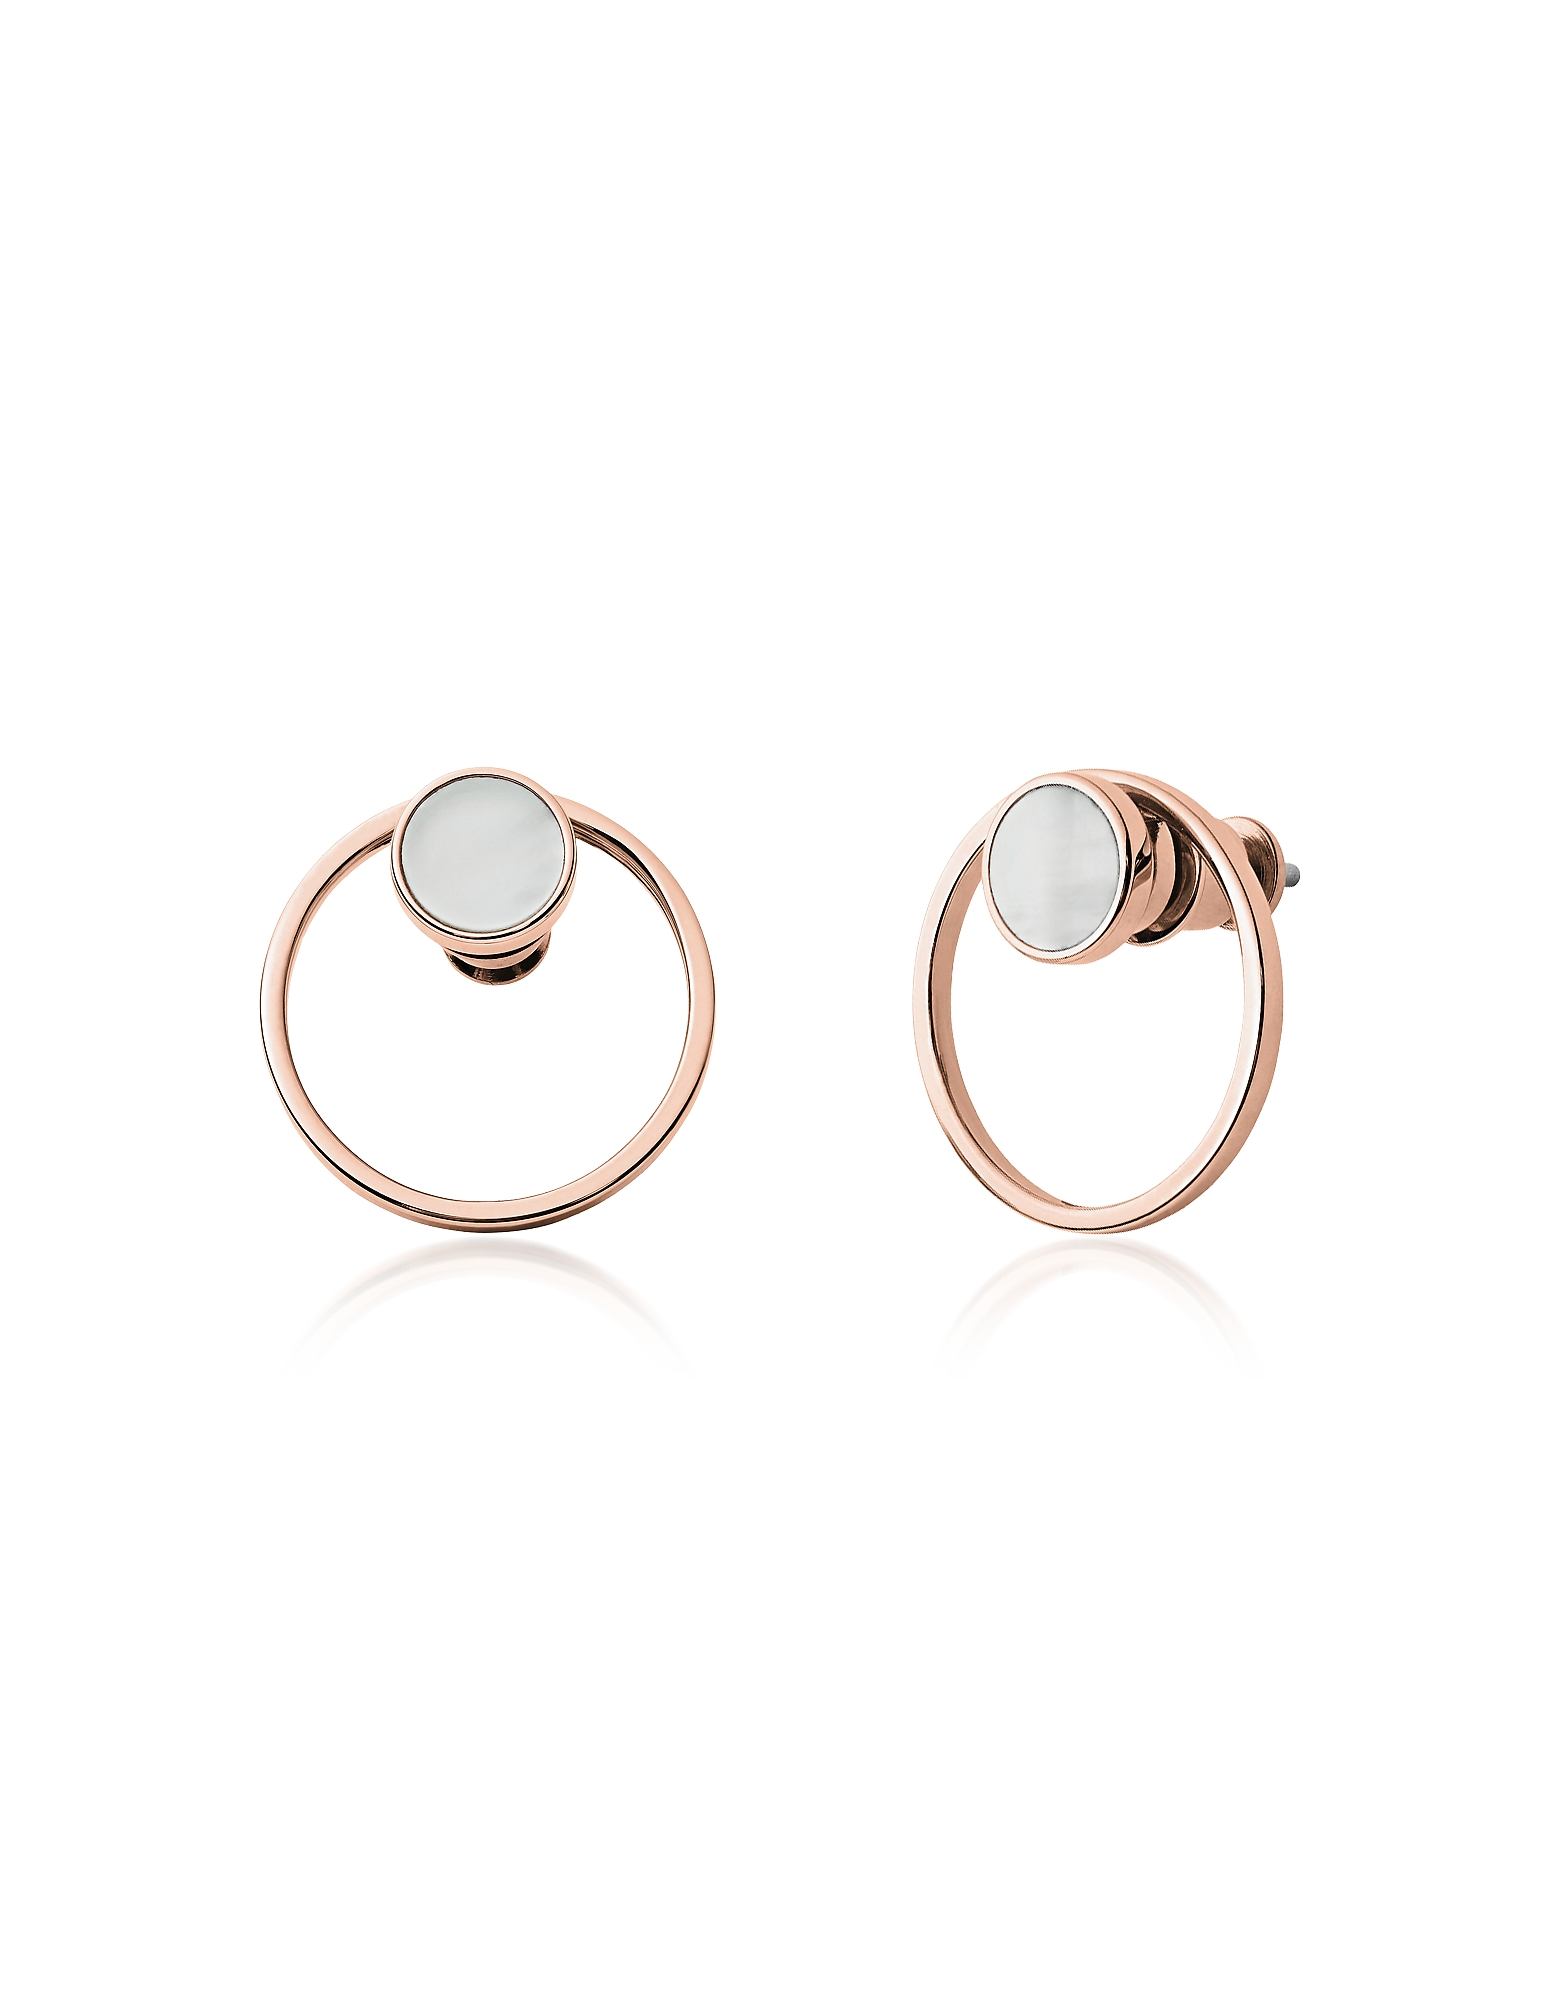 Agnethe Rose Gold-Tone Mother-of-Pearl Earrings